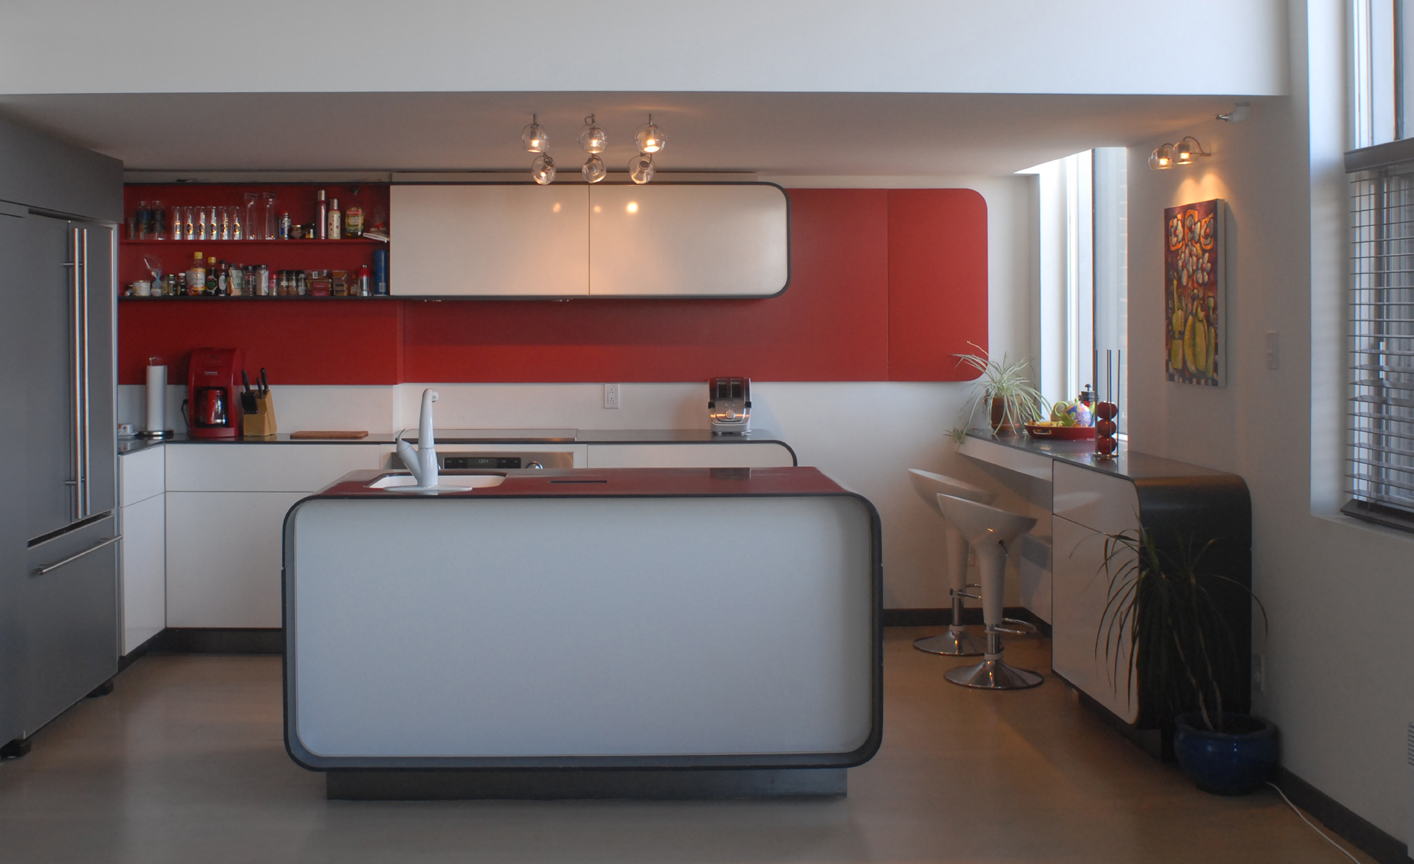 Cuisine moderne projet clark moodesign qu bec showroom for Decoration cuisine quebec